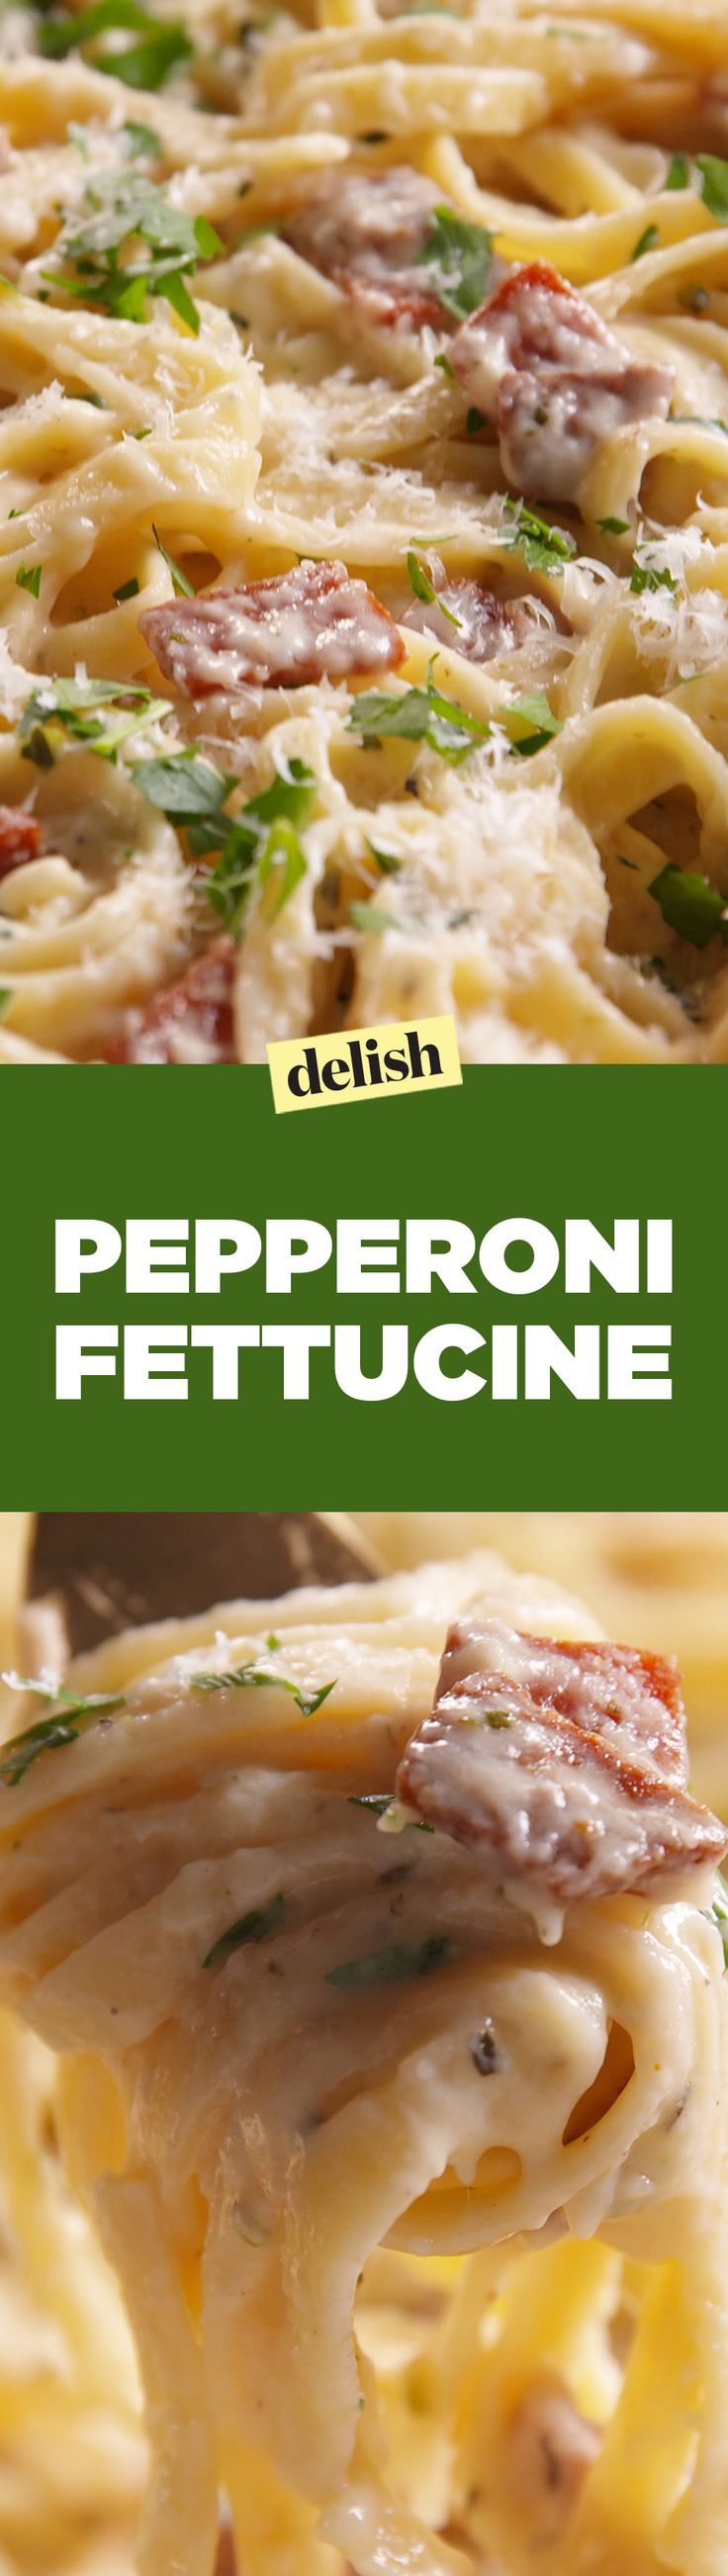 This pepperoni fettuccine will put a whole lot of pep in your step. Get the recipe on Delish.com.